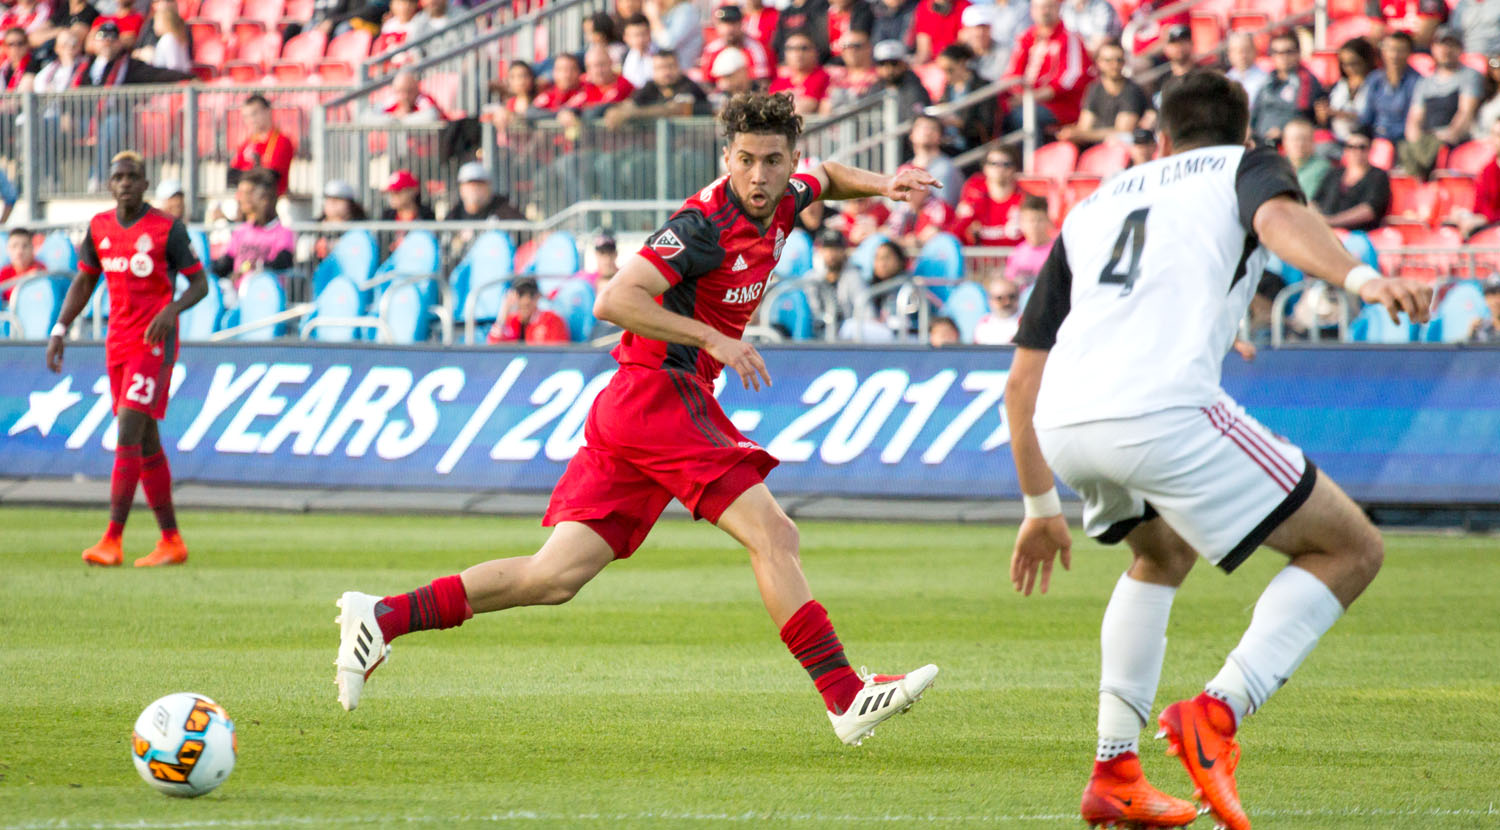 Jonathan Osorio looks at the ball as it rolls down the field and tried to get into position in front of the opposition's net.Image by Dennis Marciniak of denMAR Media.